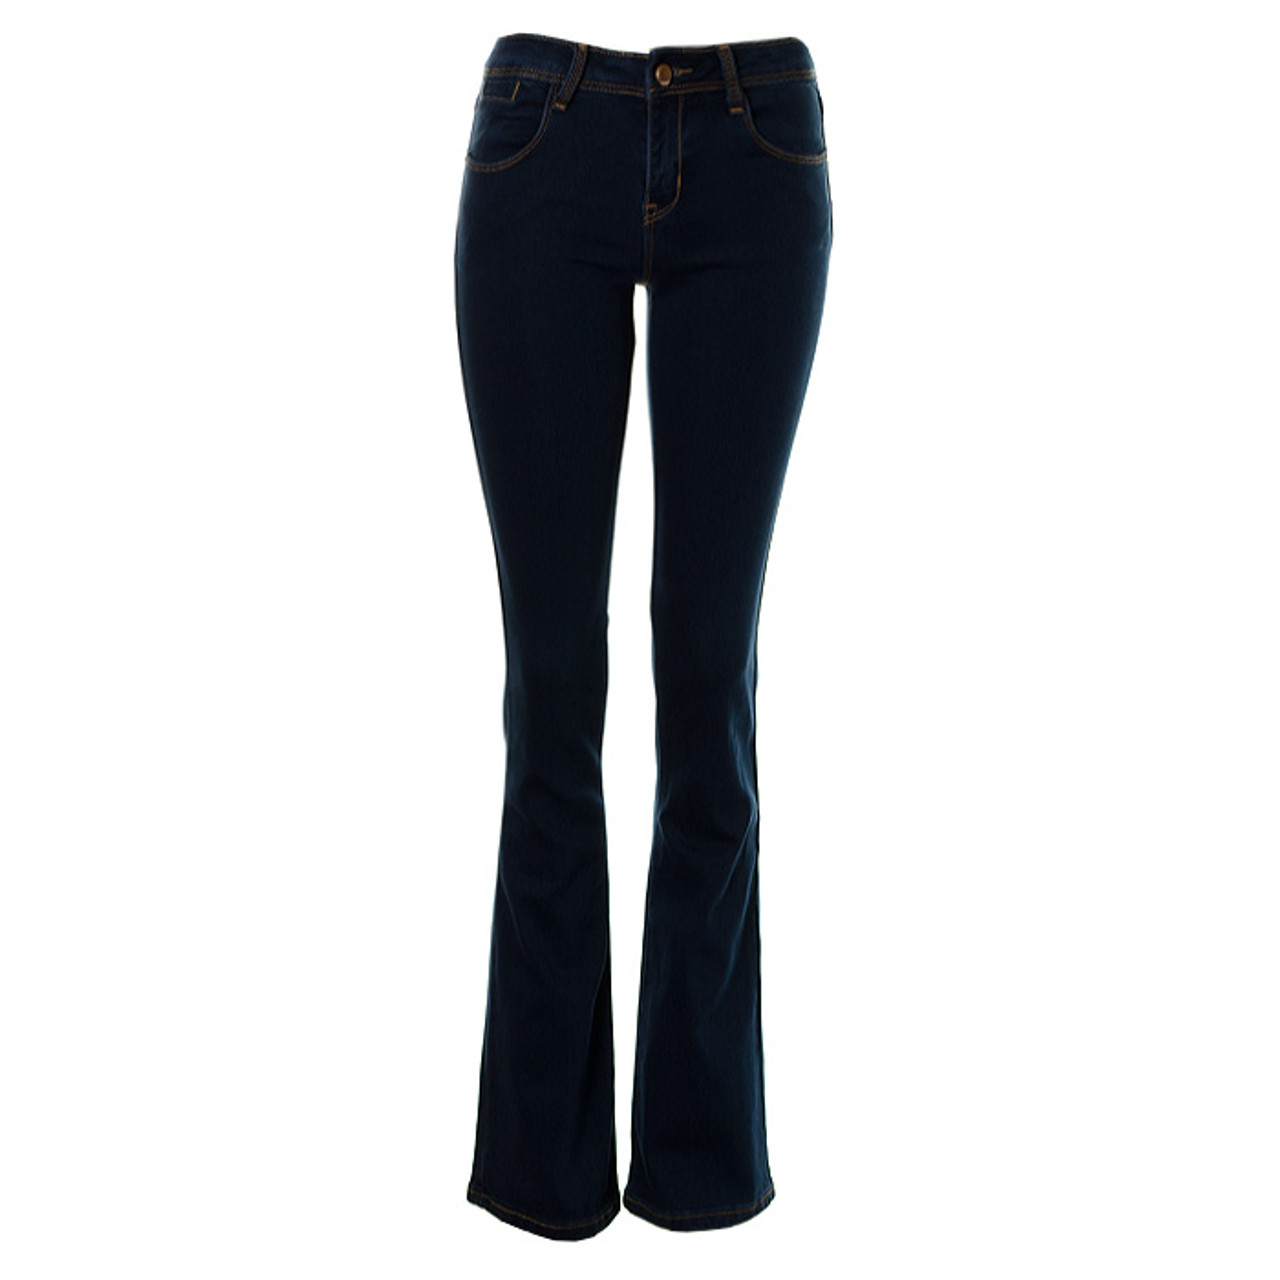 how to orders convenience goods on sale online Women's Kick Flare Bell Bottom Boot Cut Ladies Jeans Flared Wide Leg Mid  Blue Denim